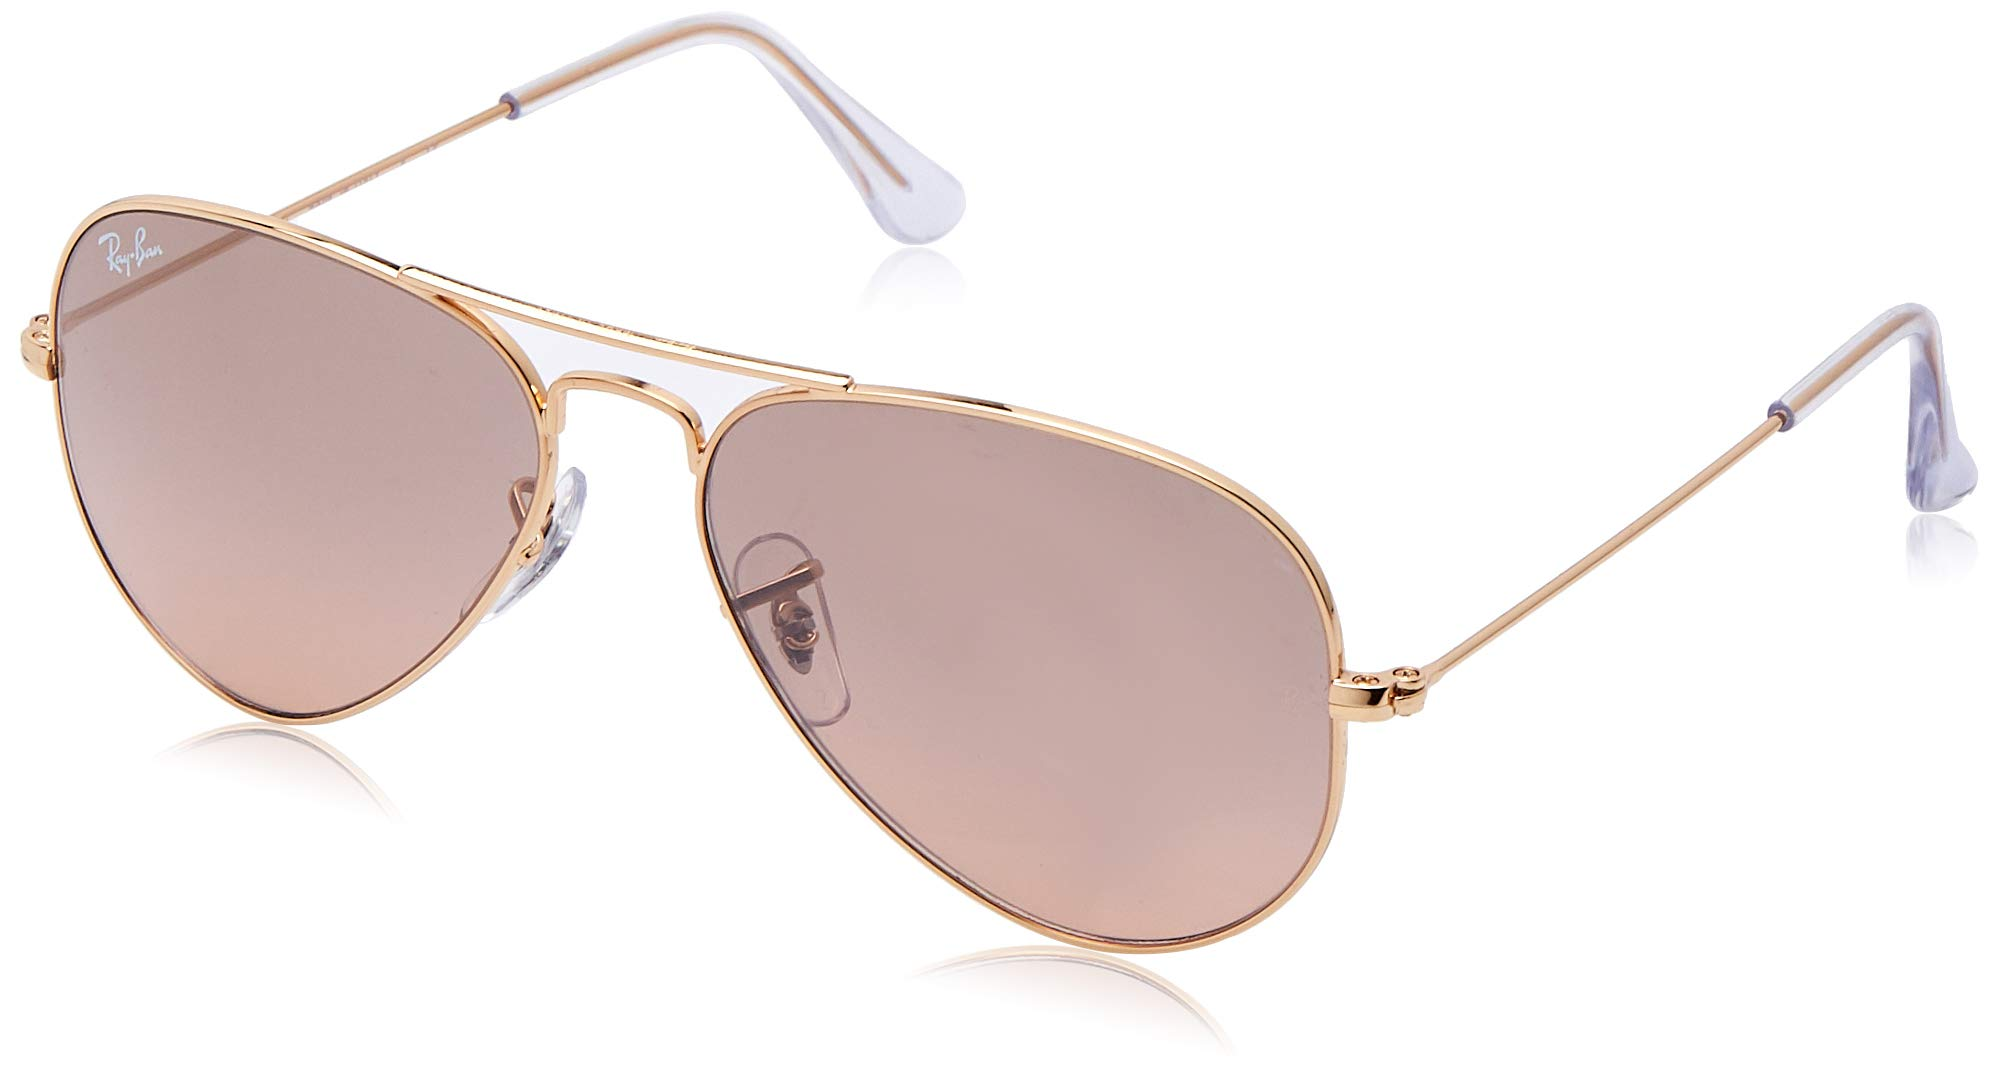 RAY-BAN RB3025 Aviator Large Metal Sunglasses, Gold/Pink Mirror Gradient, 55 mm by RAY-BAN